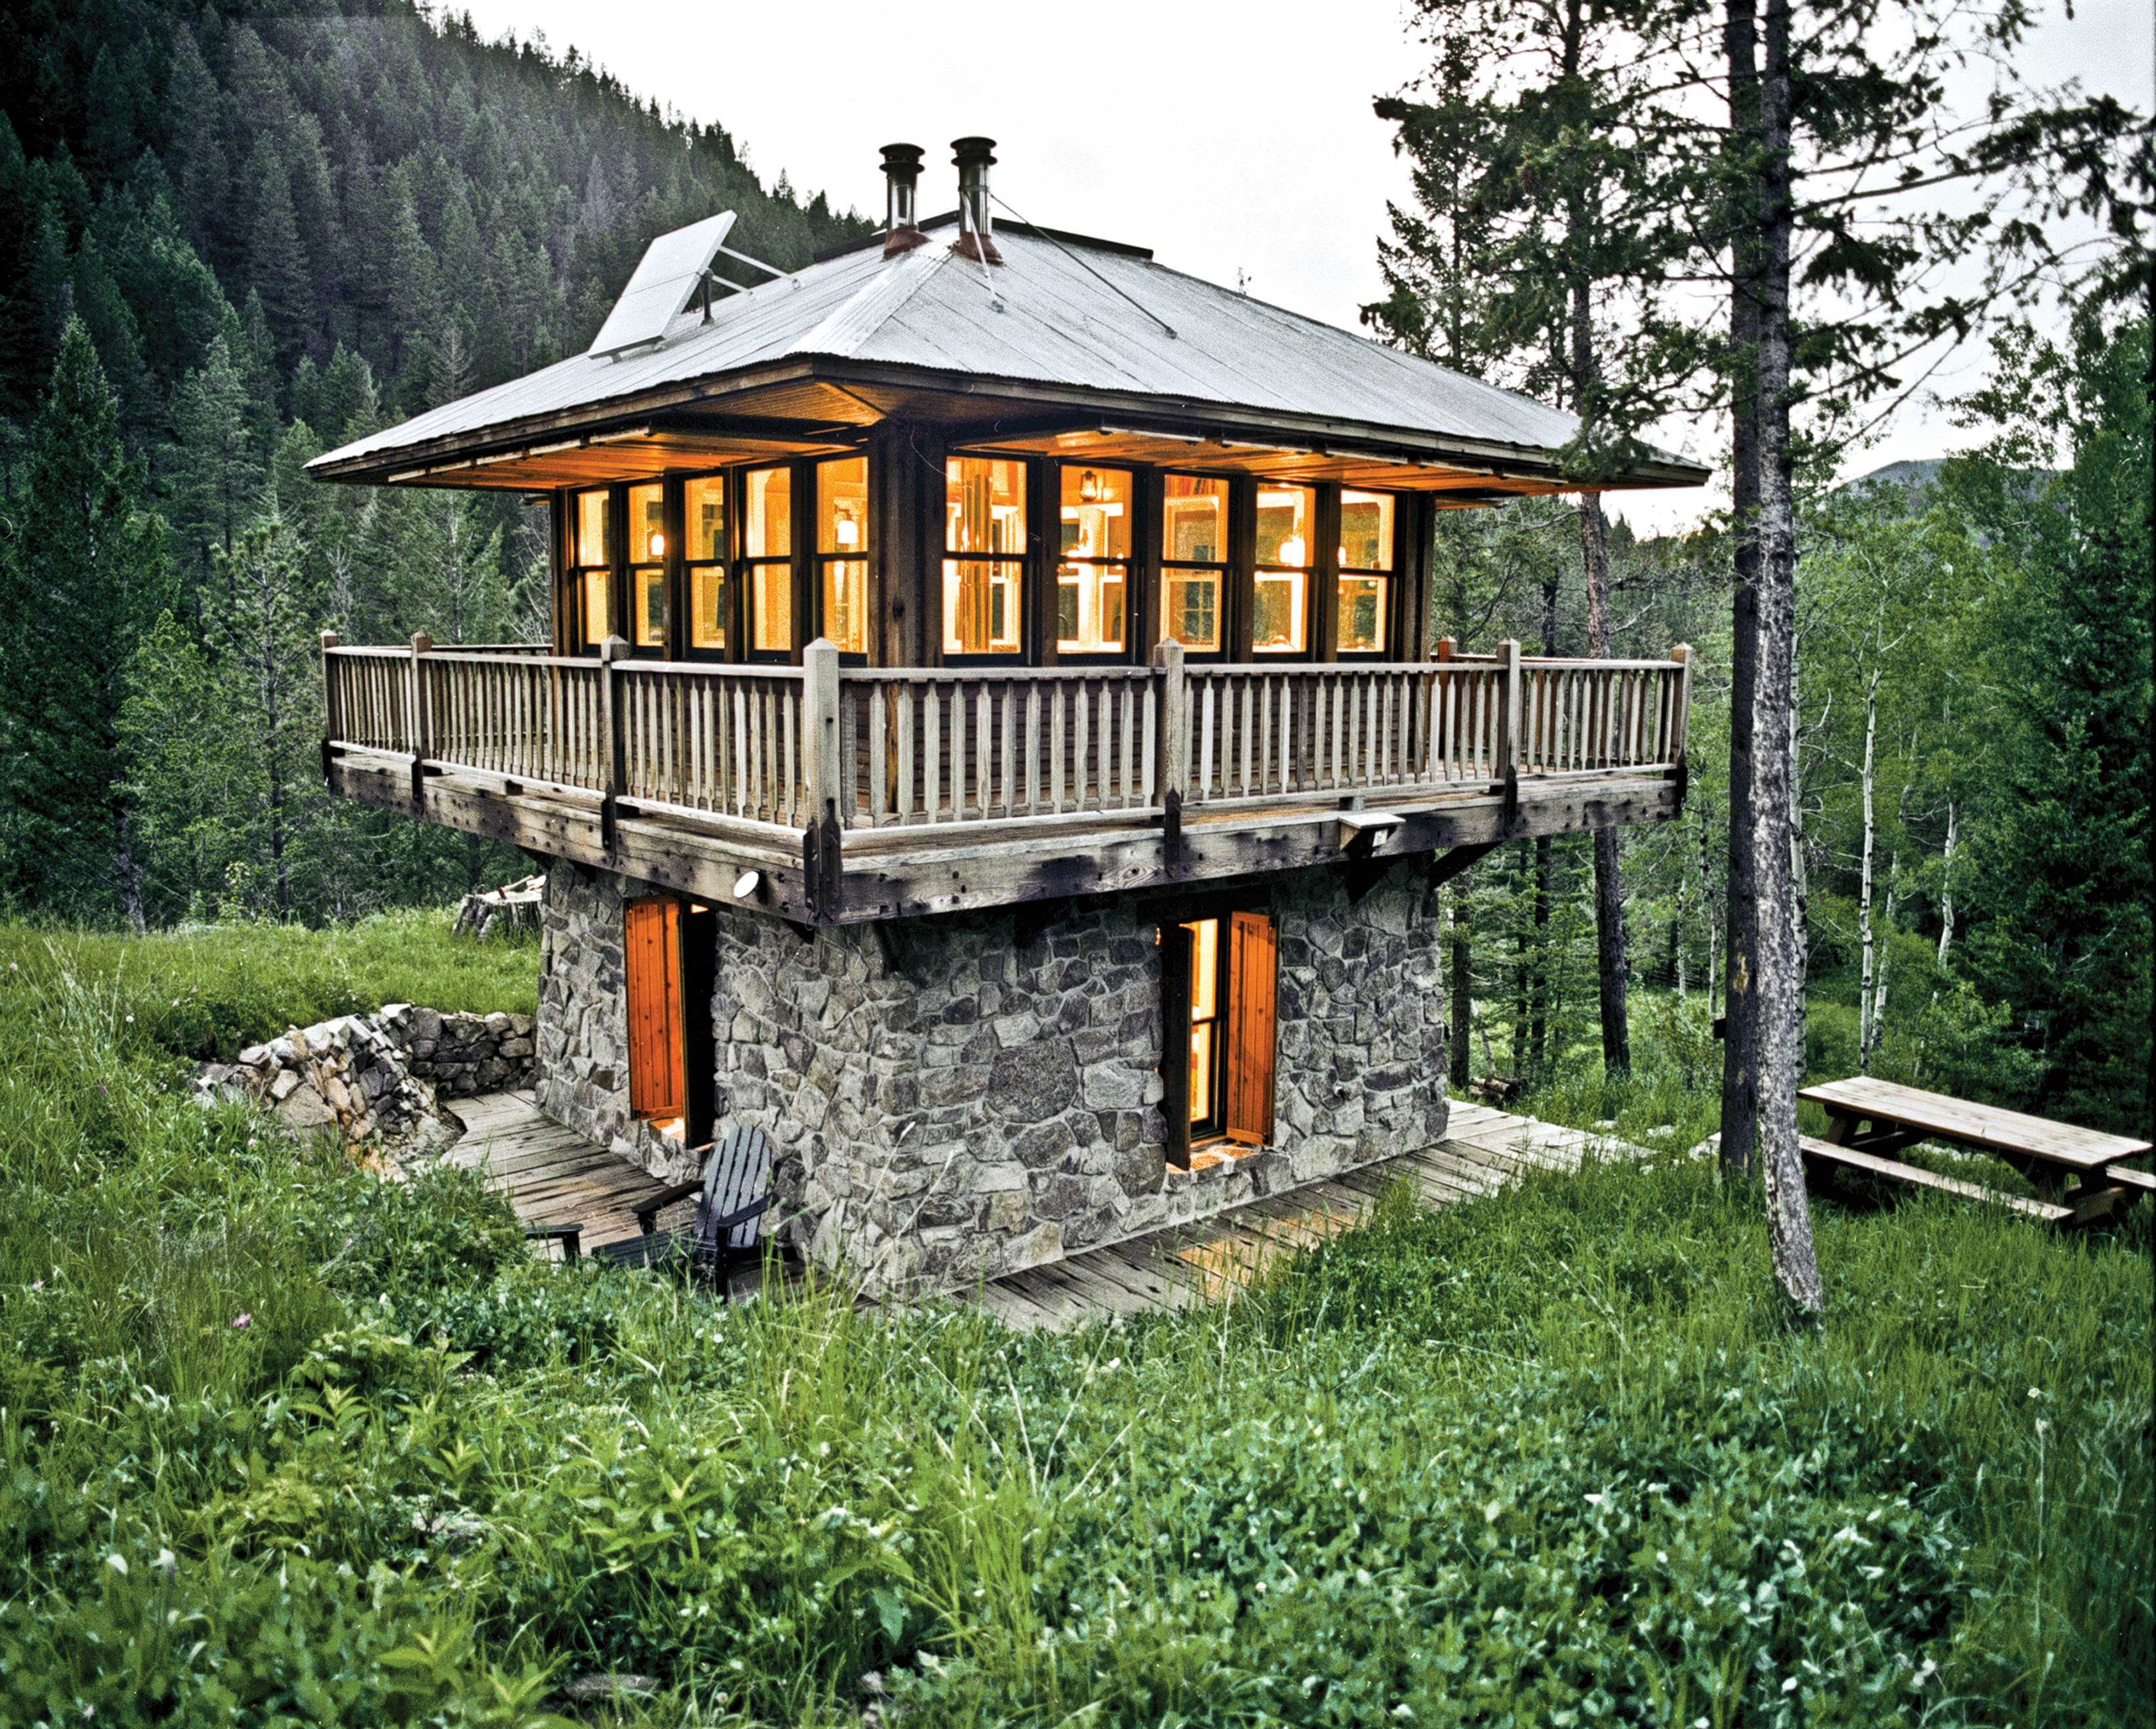 mortgage free living in a hand built tiny home green homes mortgage free living in a hand built tiny home green homes